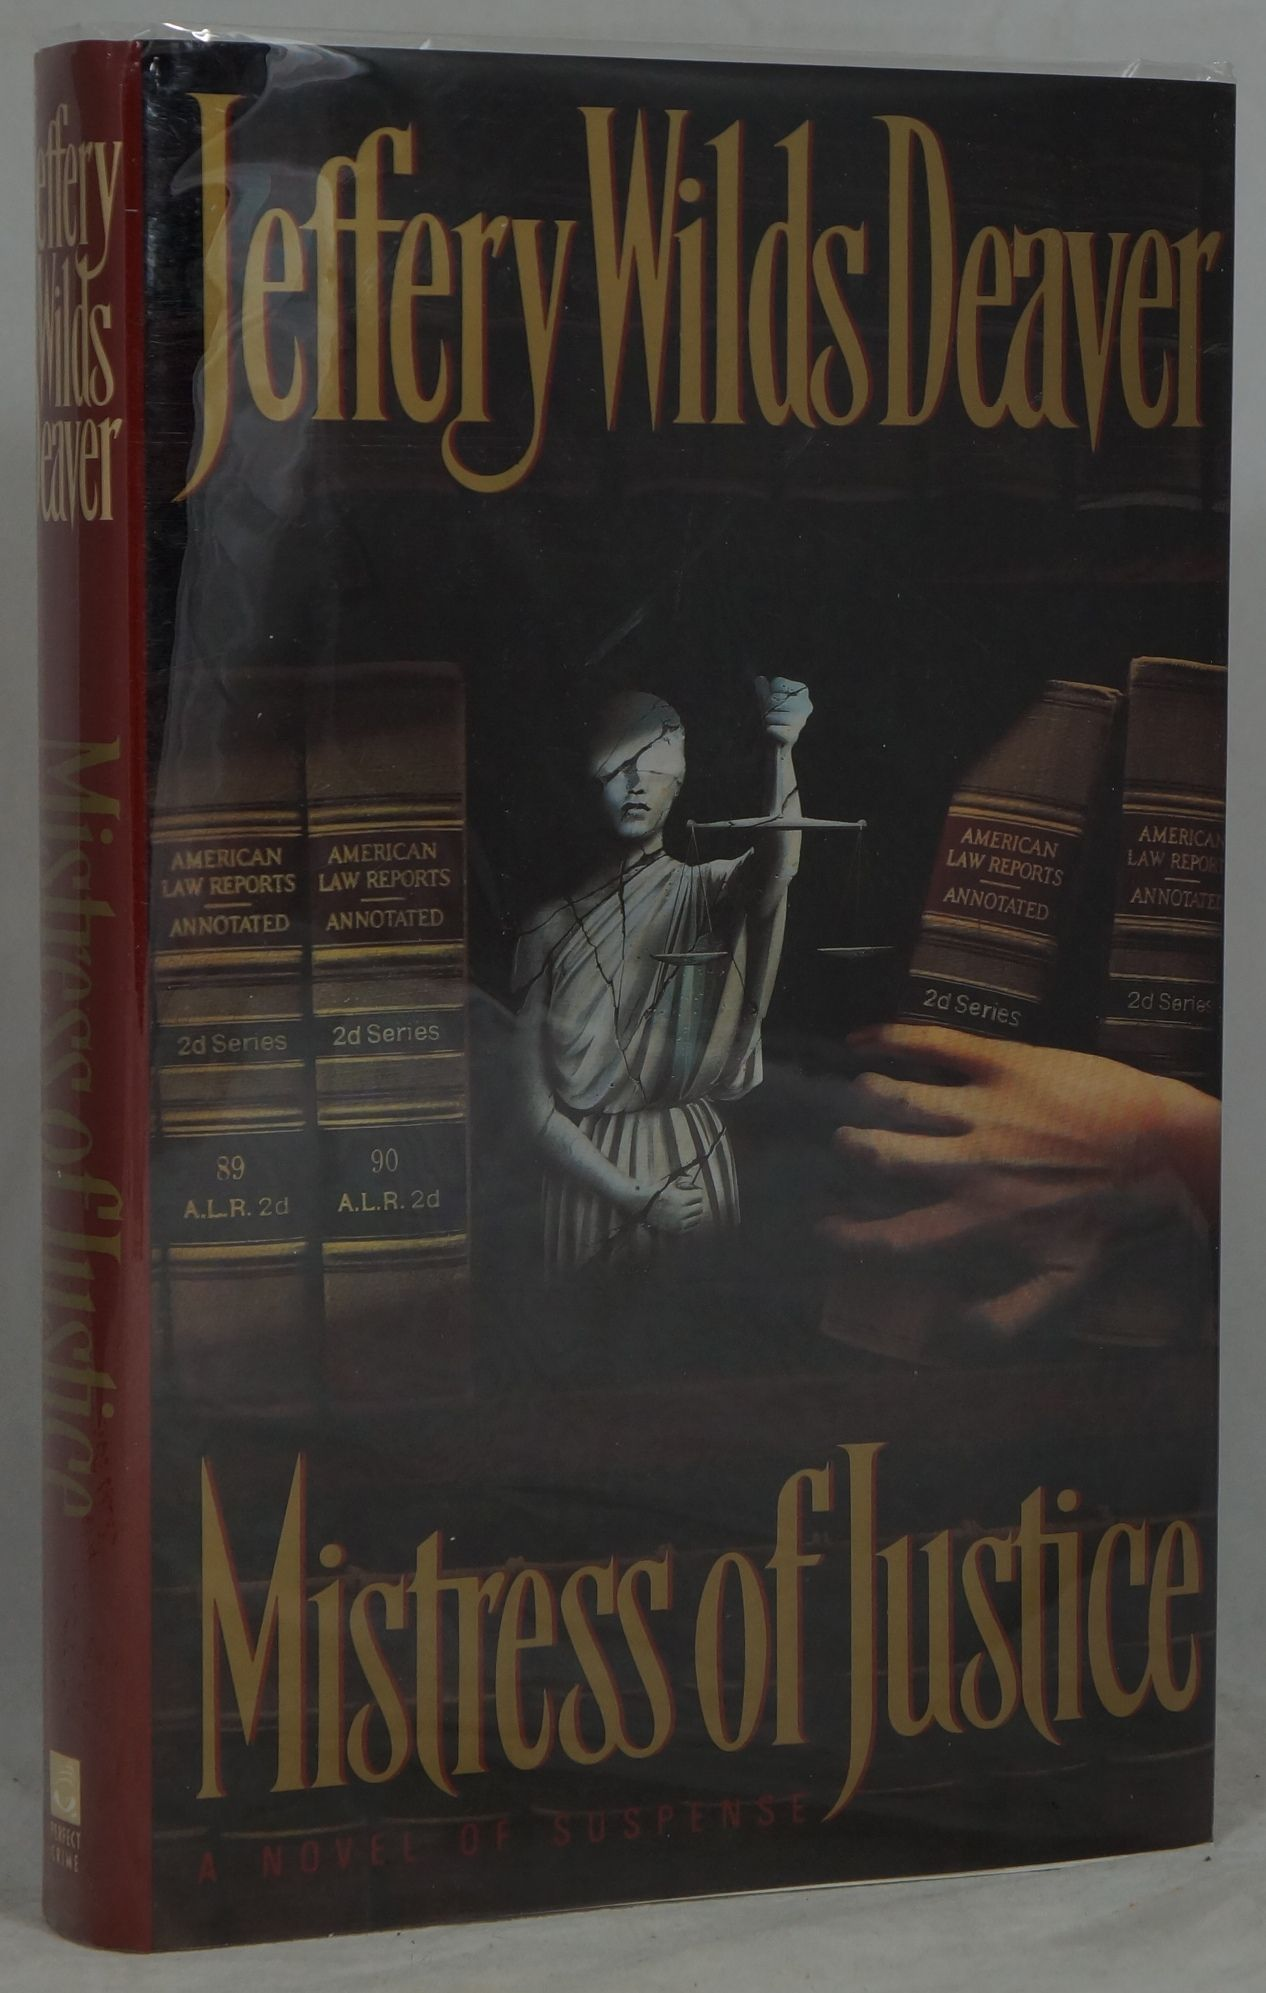 Jeffery Wilds Deaver Mistress Of Justice First Edition